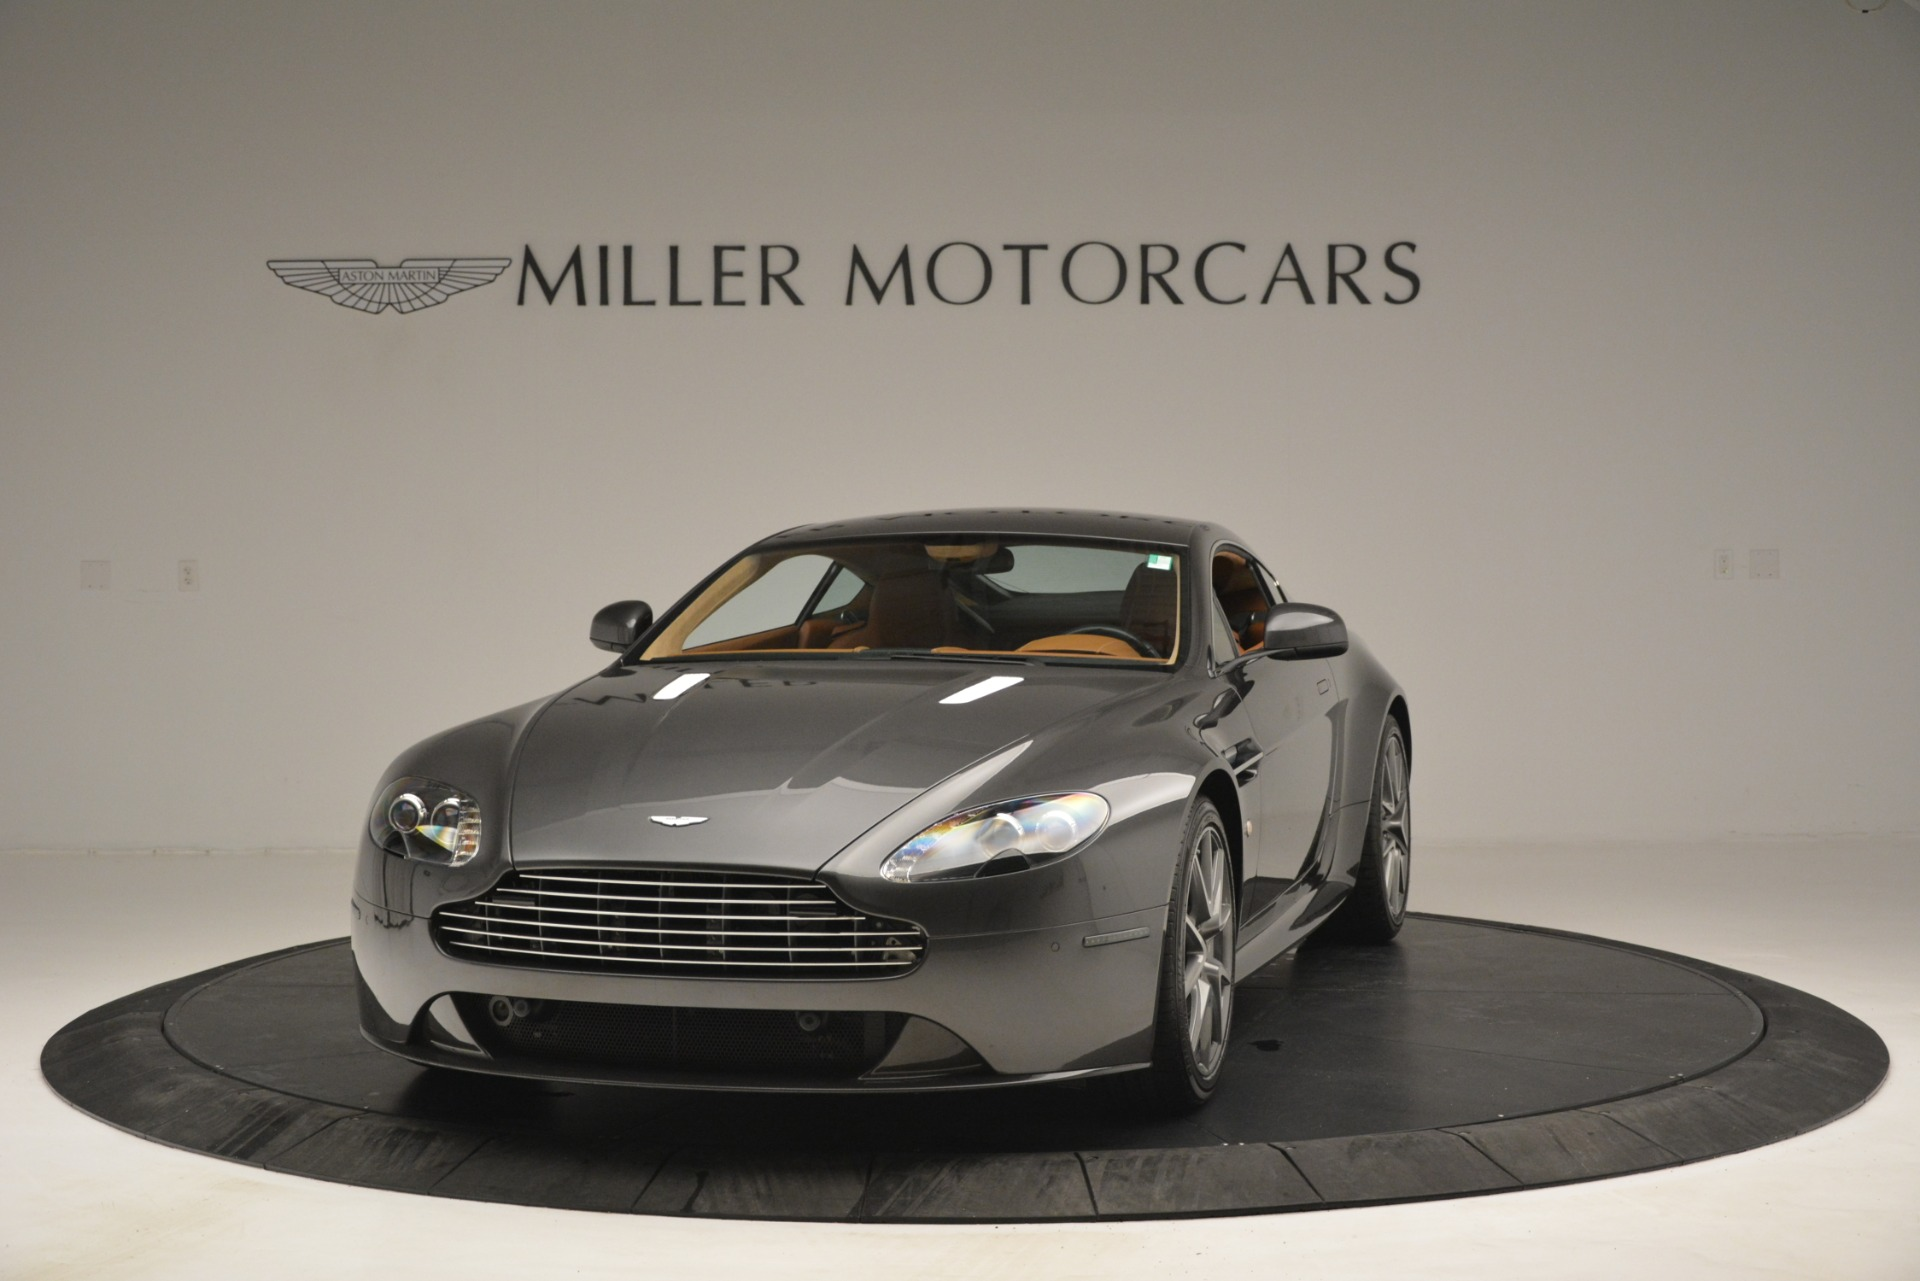 Used 2012 Aston Martin V8 Vantage S Coupe for sale Sold at Alfa Romeo of Westport in Westport CT 06880 1